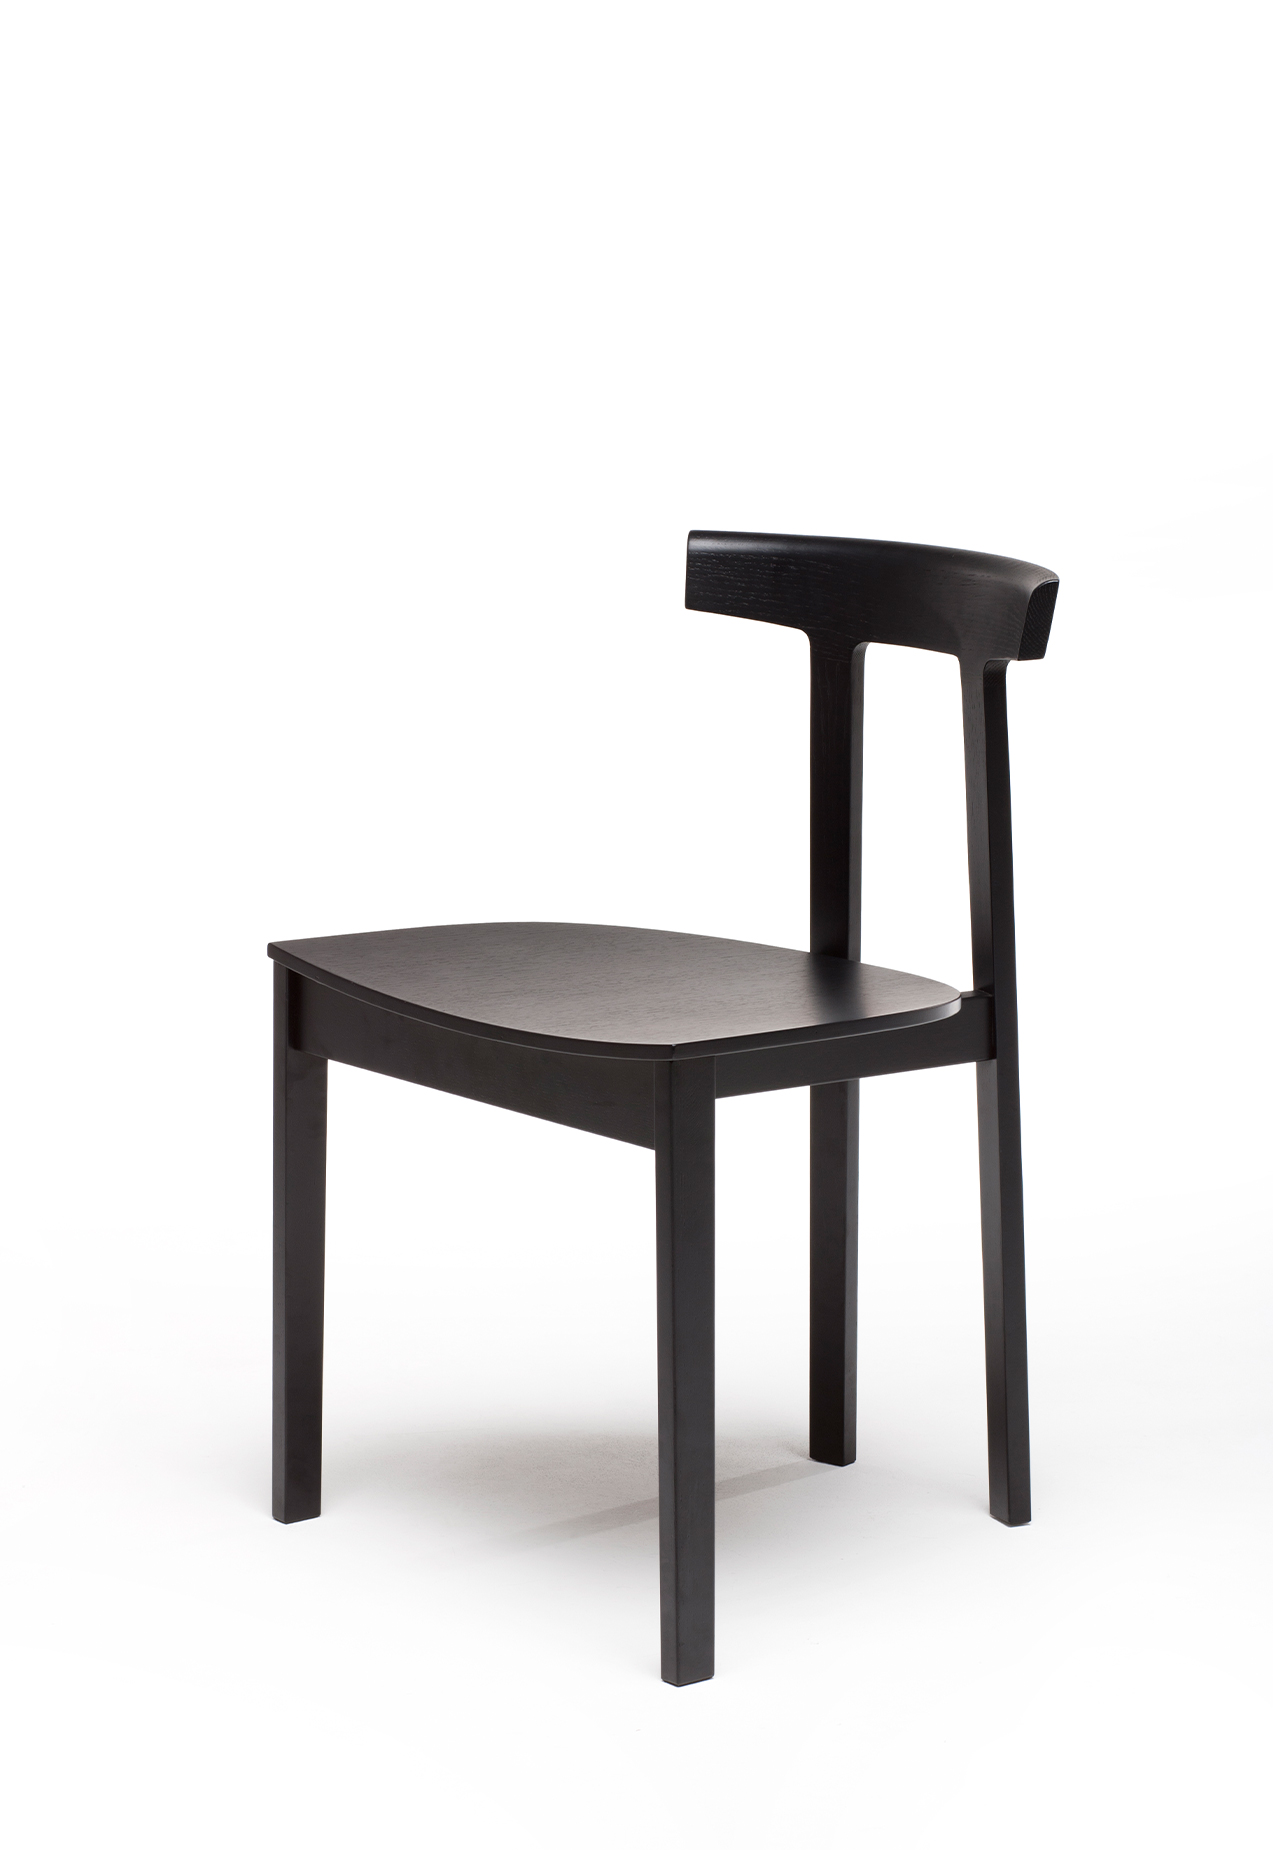 Torii Chair in black stained ash, plywood seat